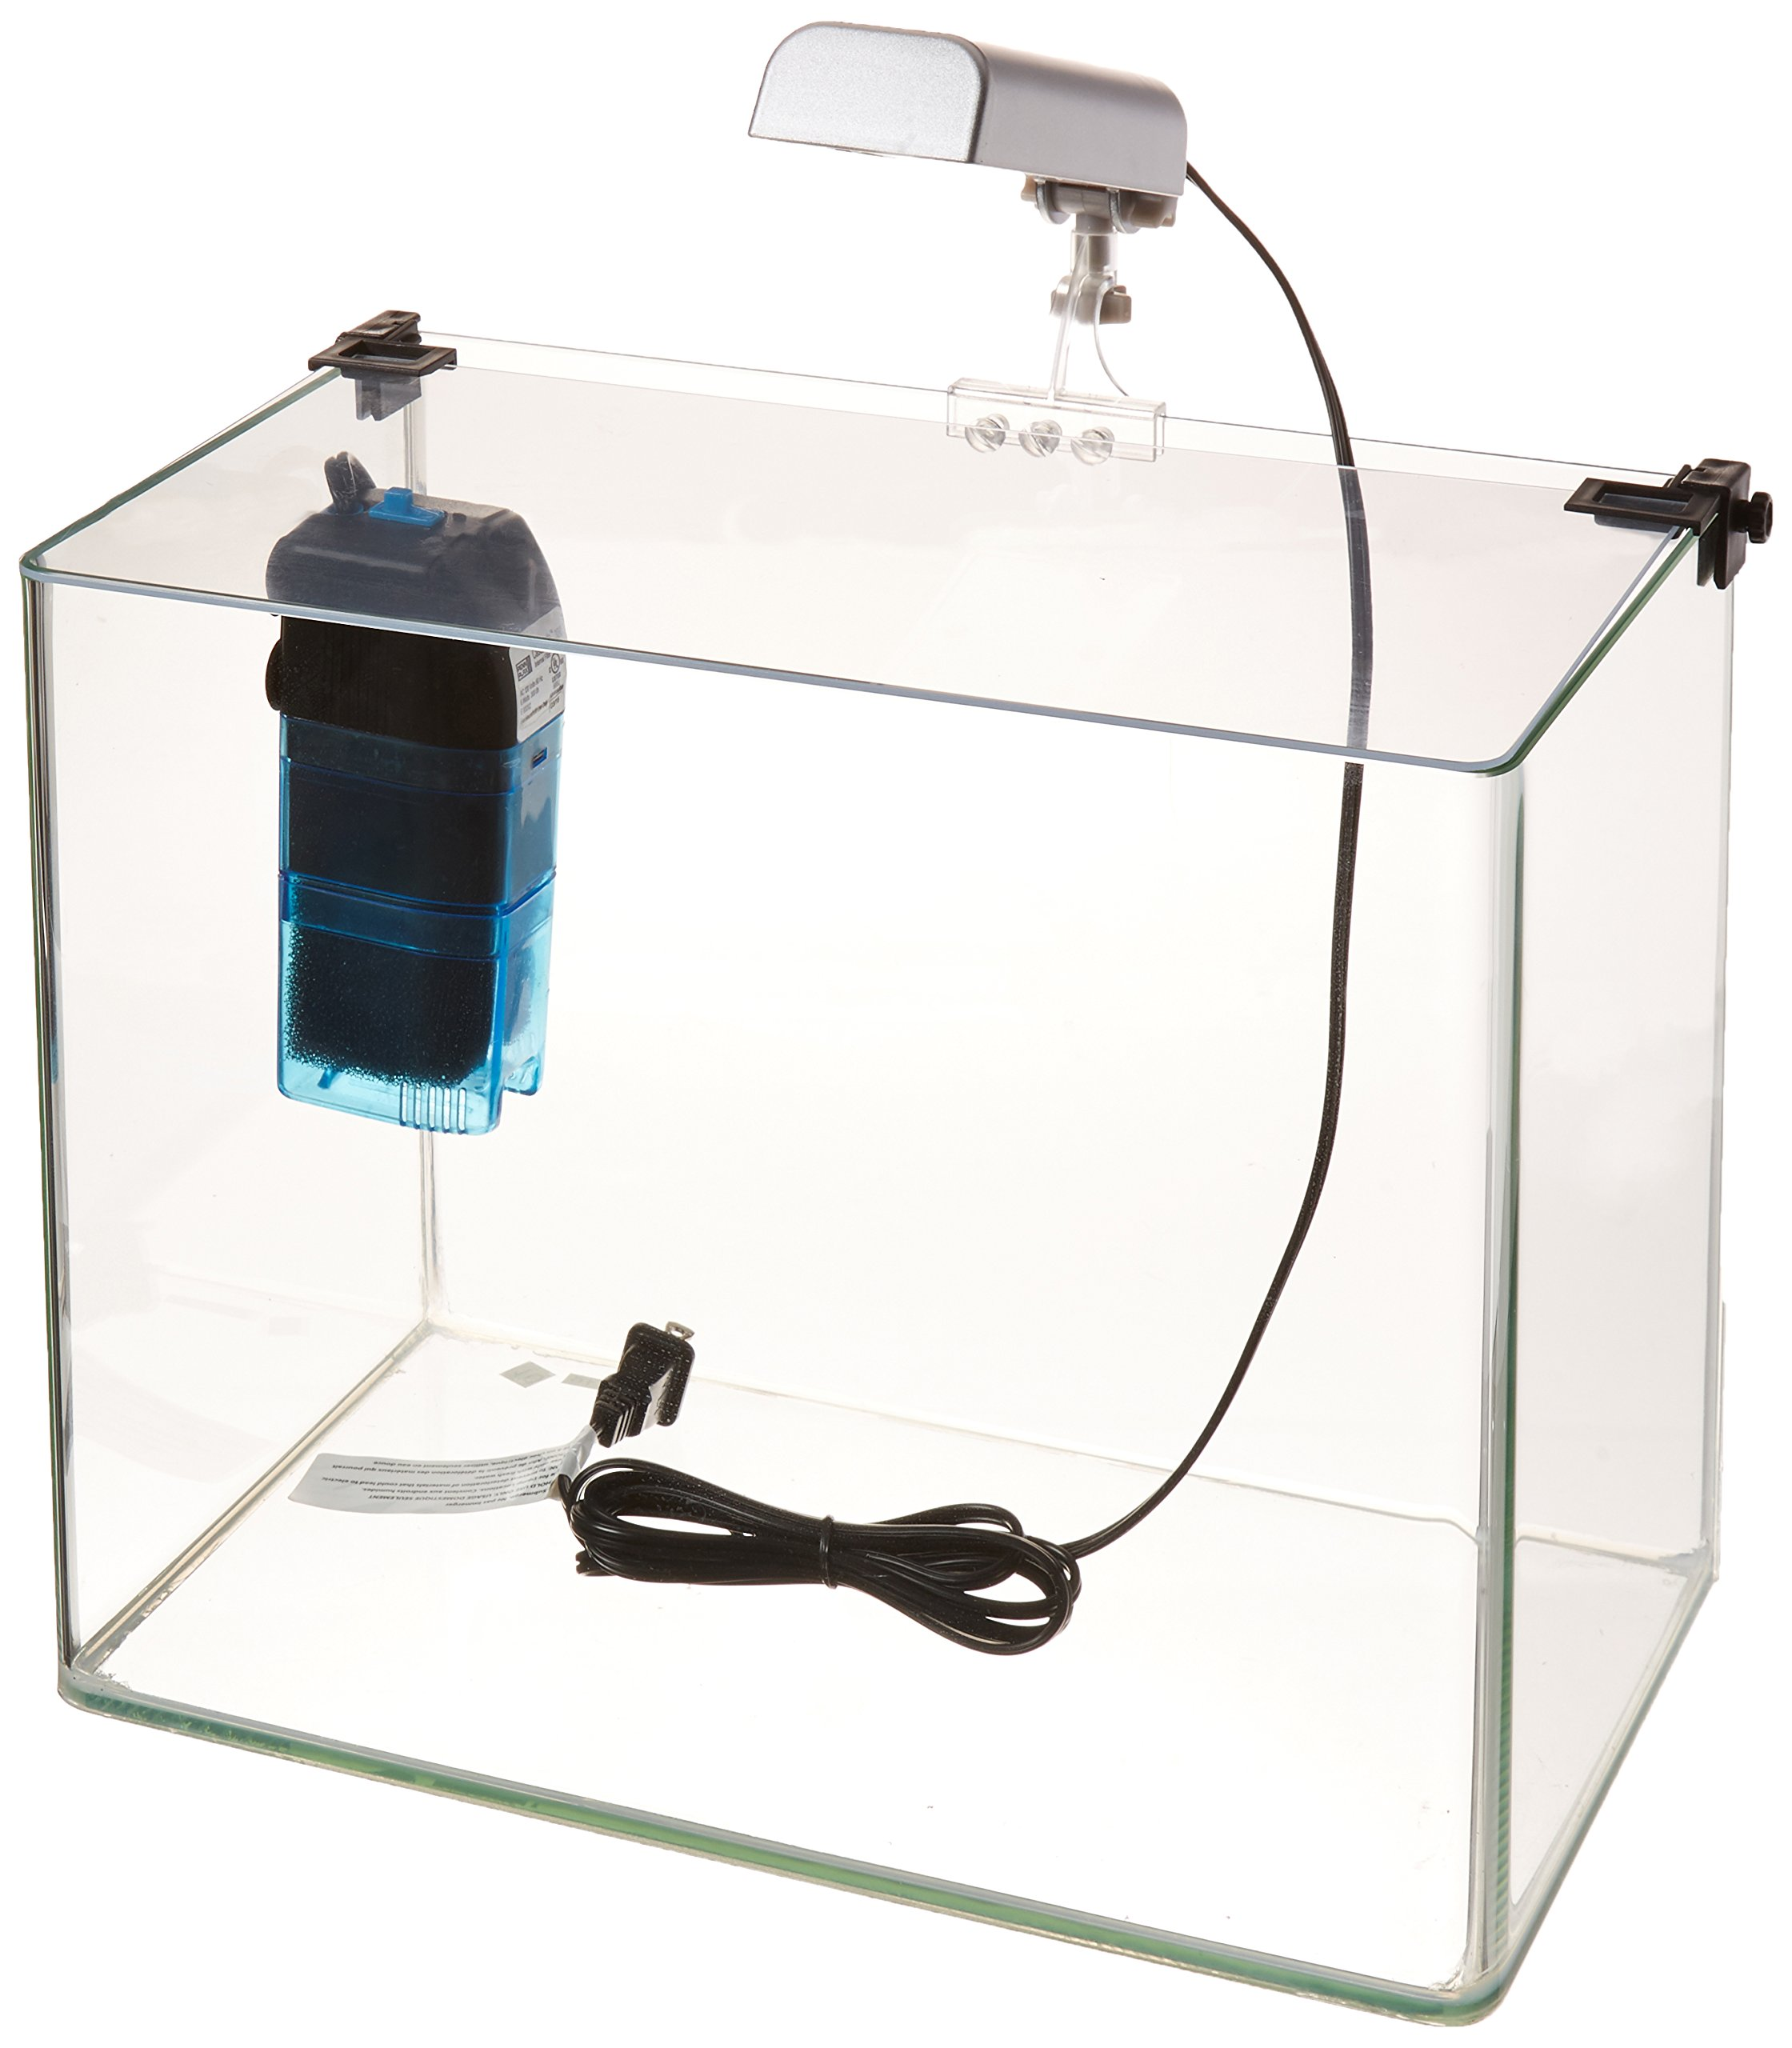 Penn-Plax Curved Corner Glass Aquarium Kit, Filter, LED Light, Float Glass for Maximum Viewing 5 Gallon by Penn-Plax